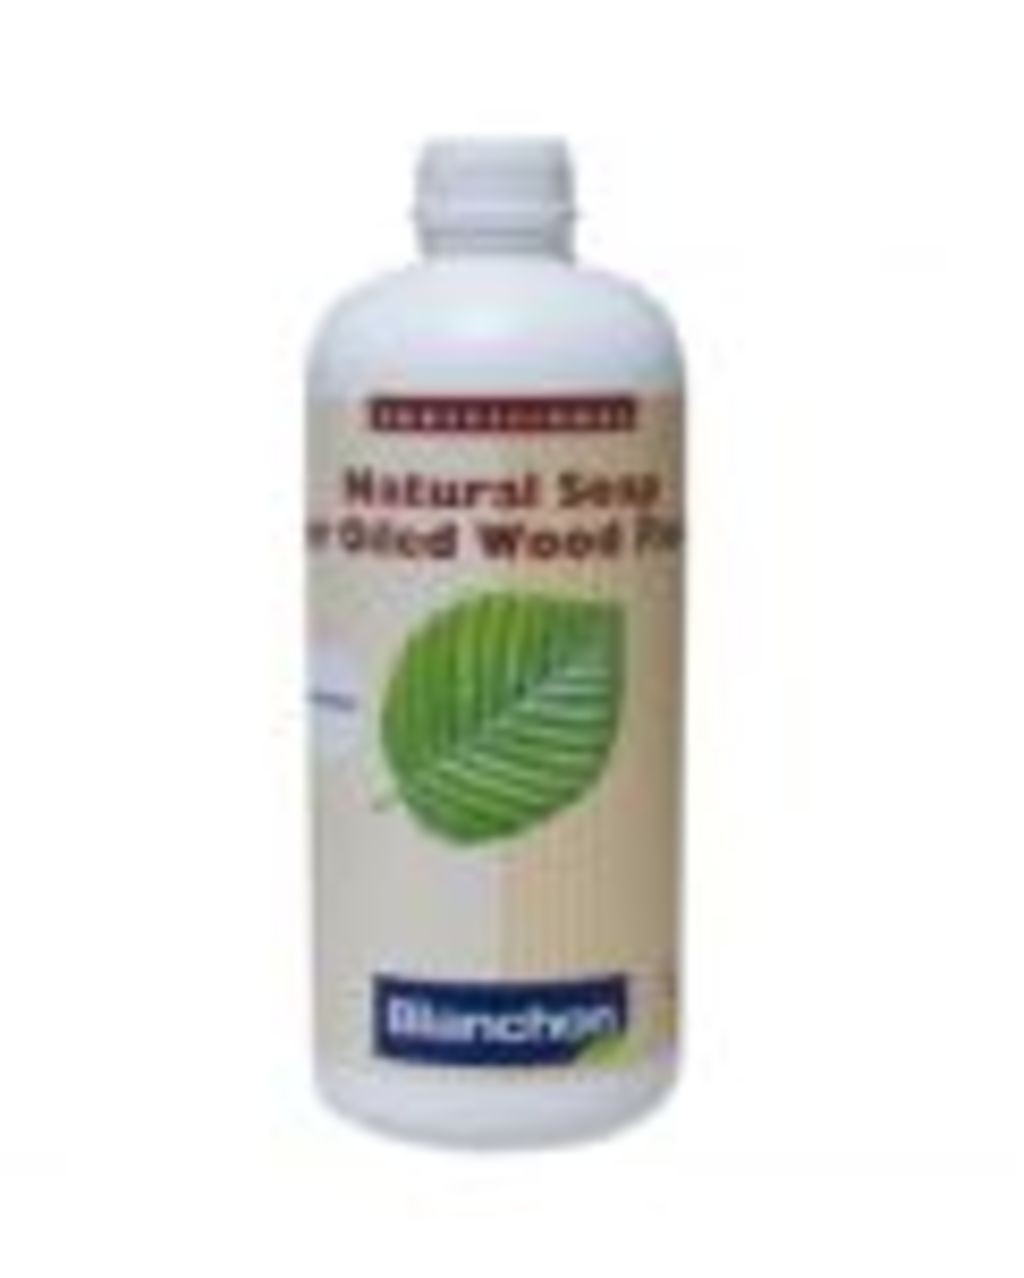 Blanchon Natural Soap for Oiled Wood Floor